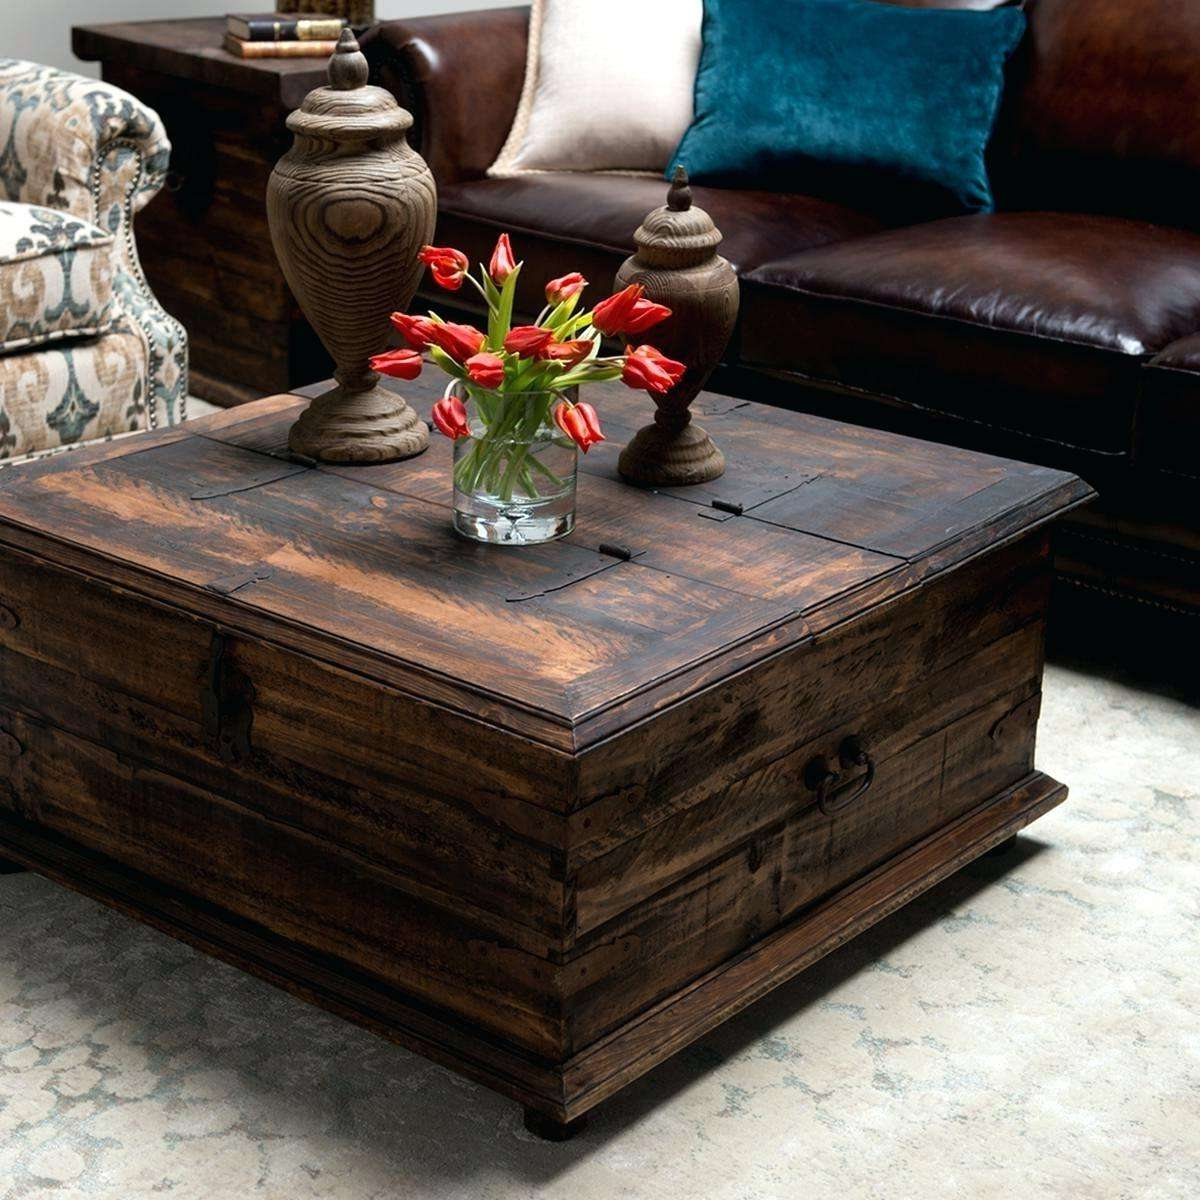 Widely Used Square Storage Coffee Tables Pertaining To Coffee Table: Square Storage Coffee Table (View 7 of 20)